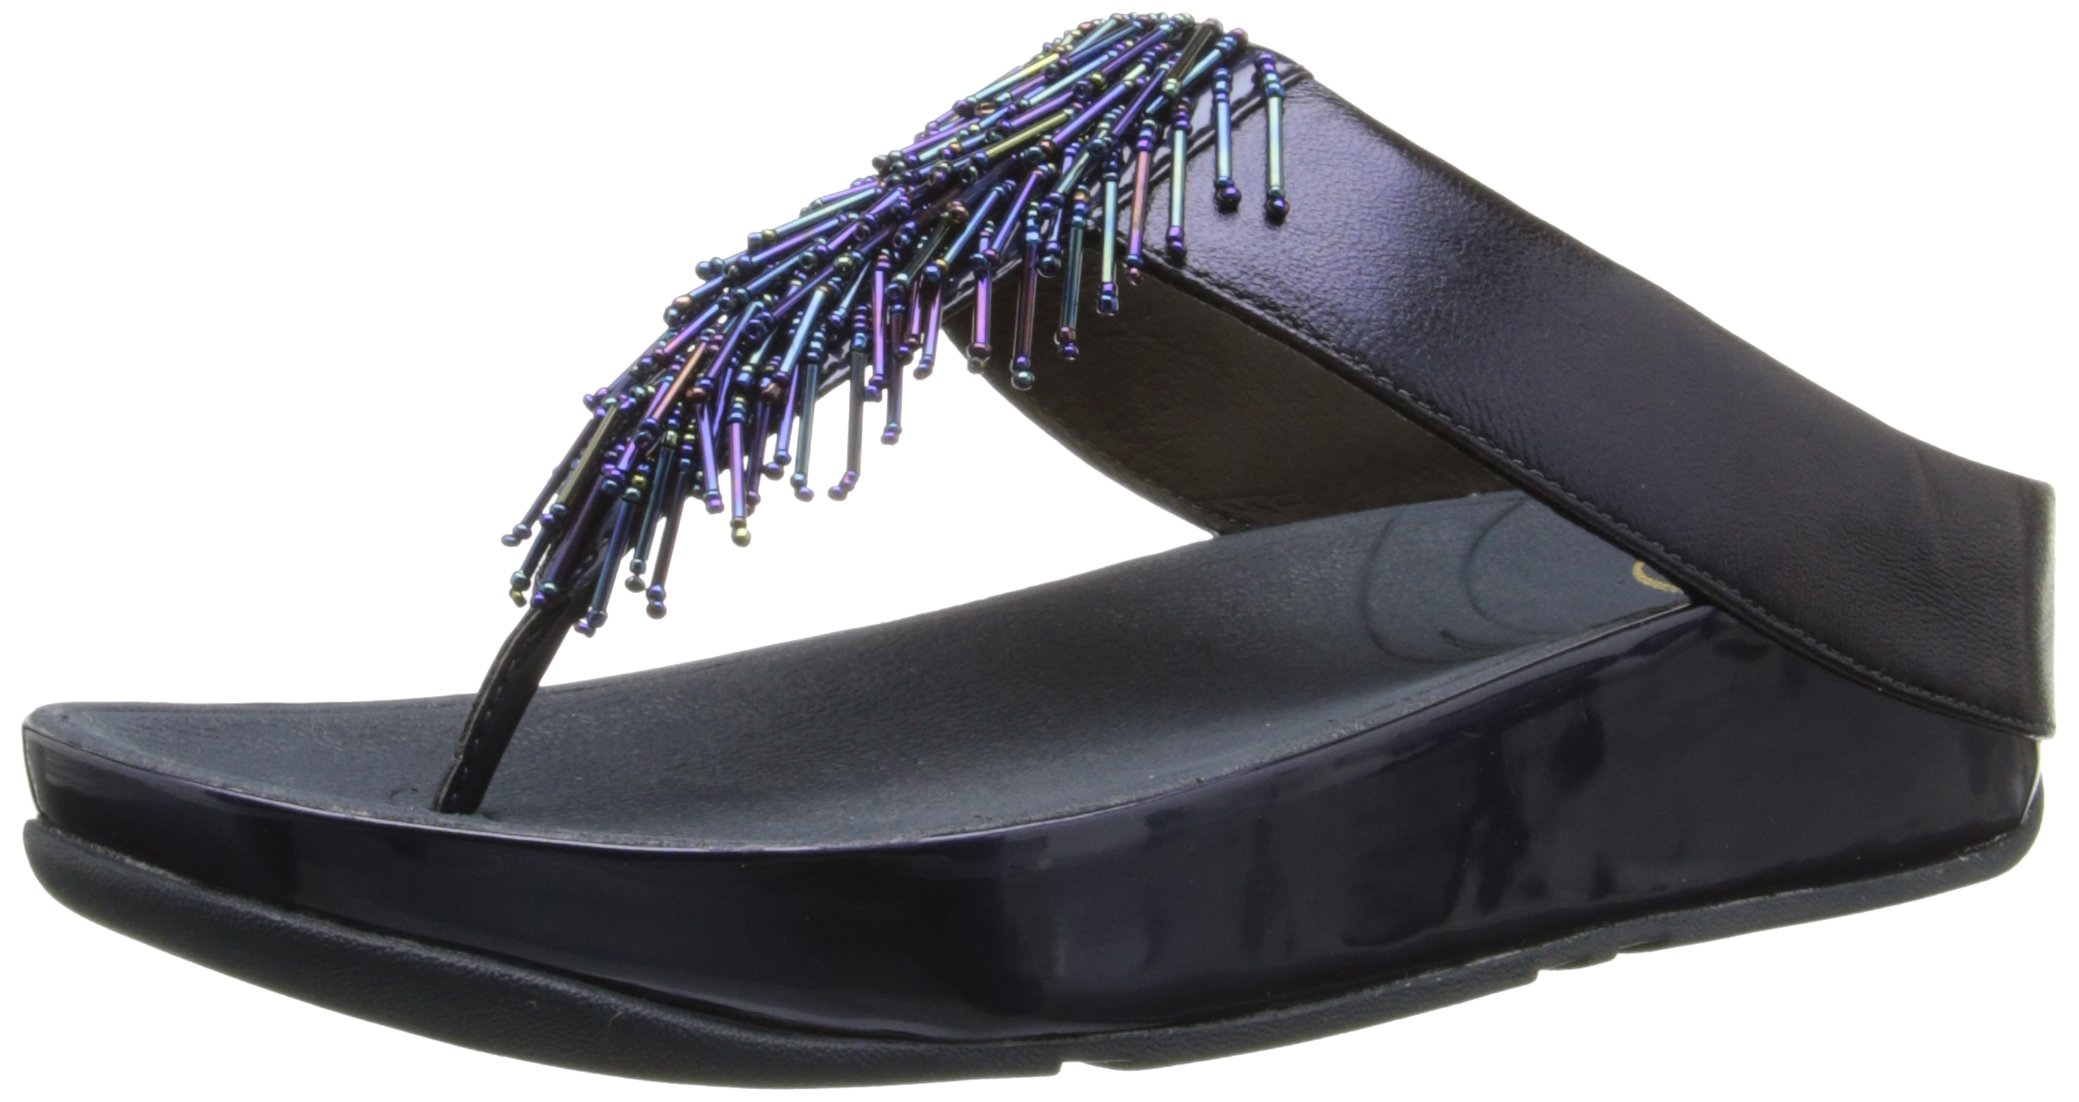 FitFlop Women's Cha Cha Flip Flop, Sapphire, 6 M US by FitFlop